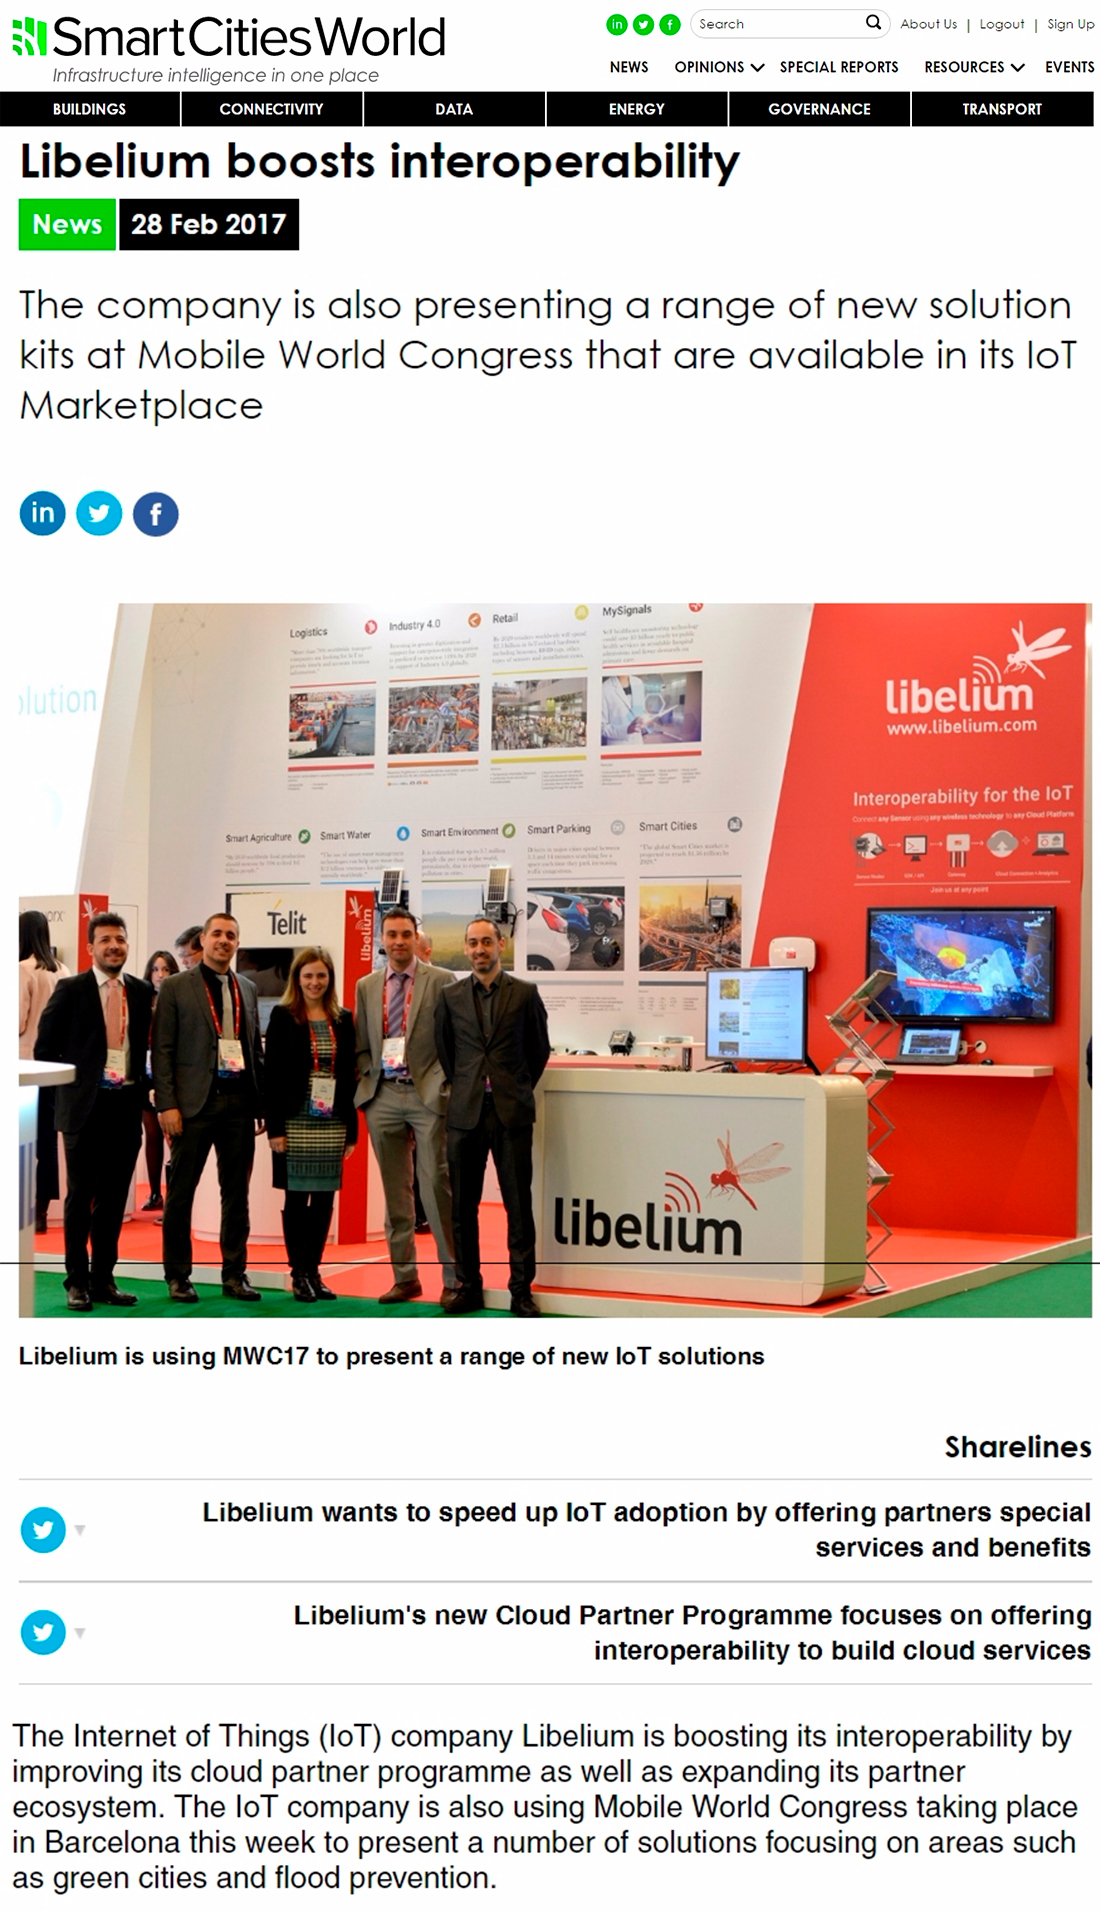 Smart Cities World – Libelium boosts interoperability